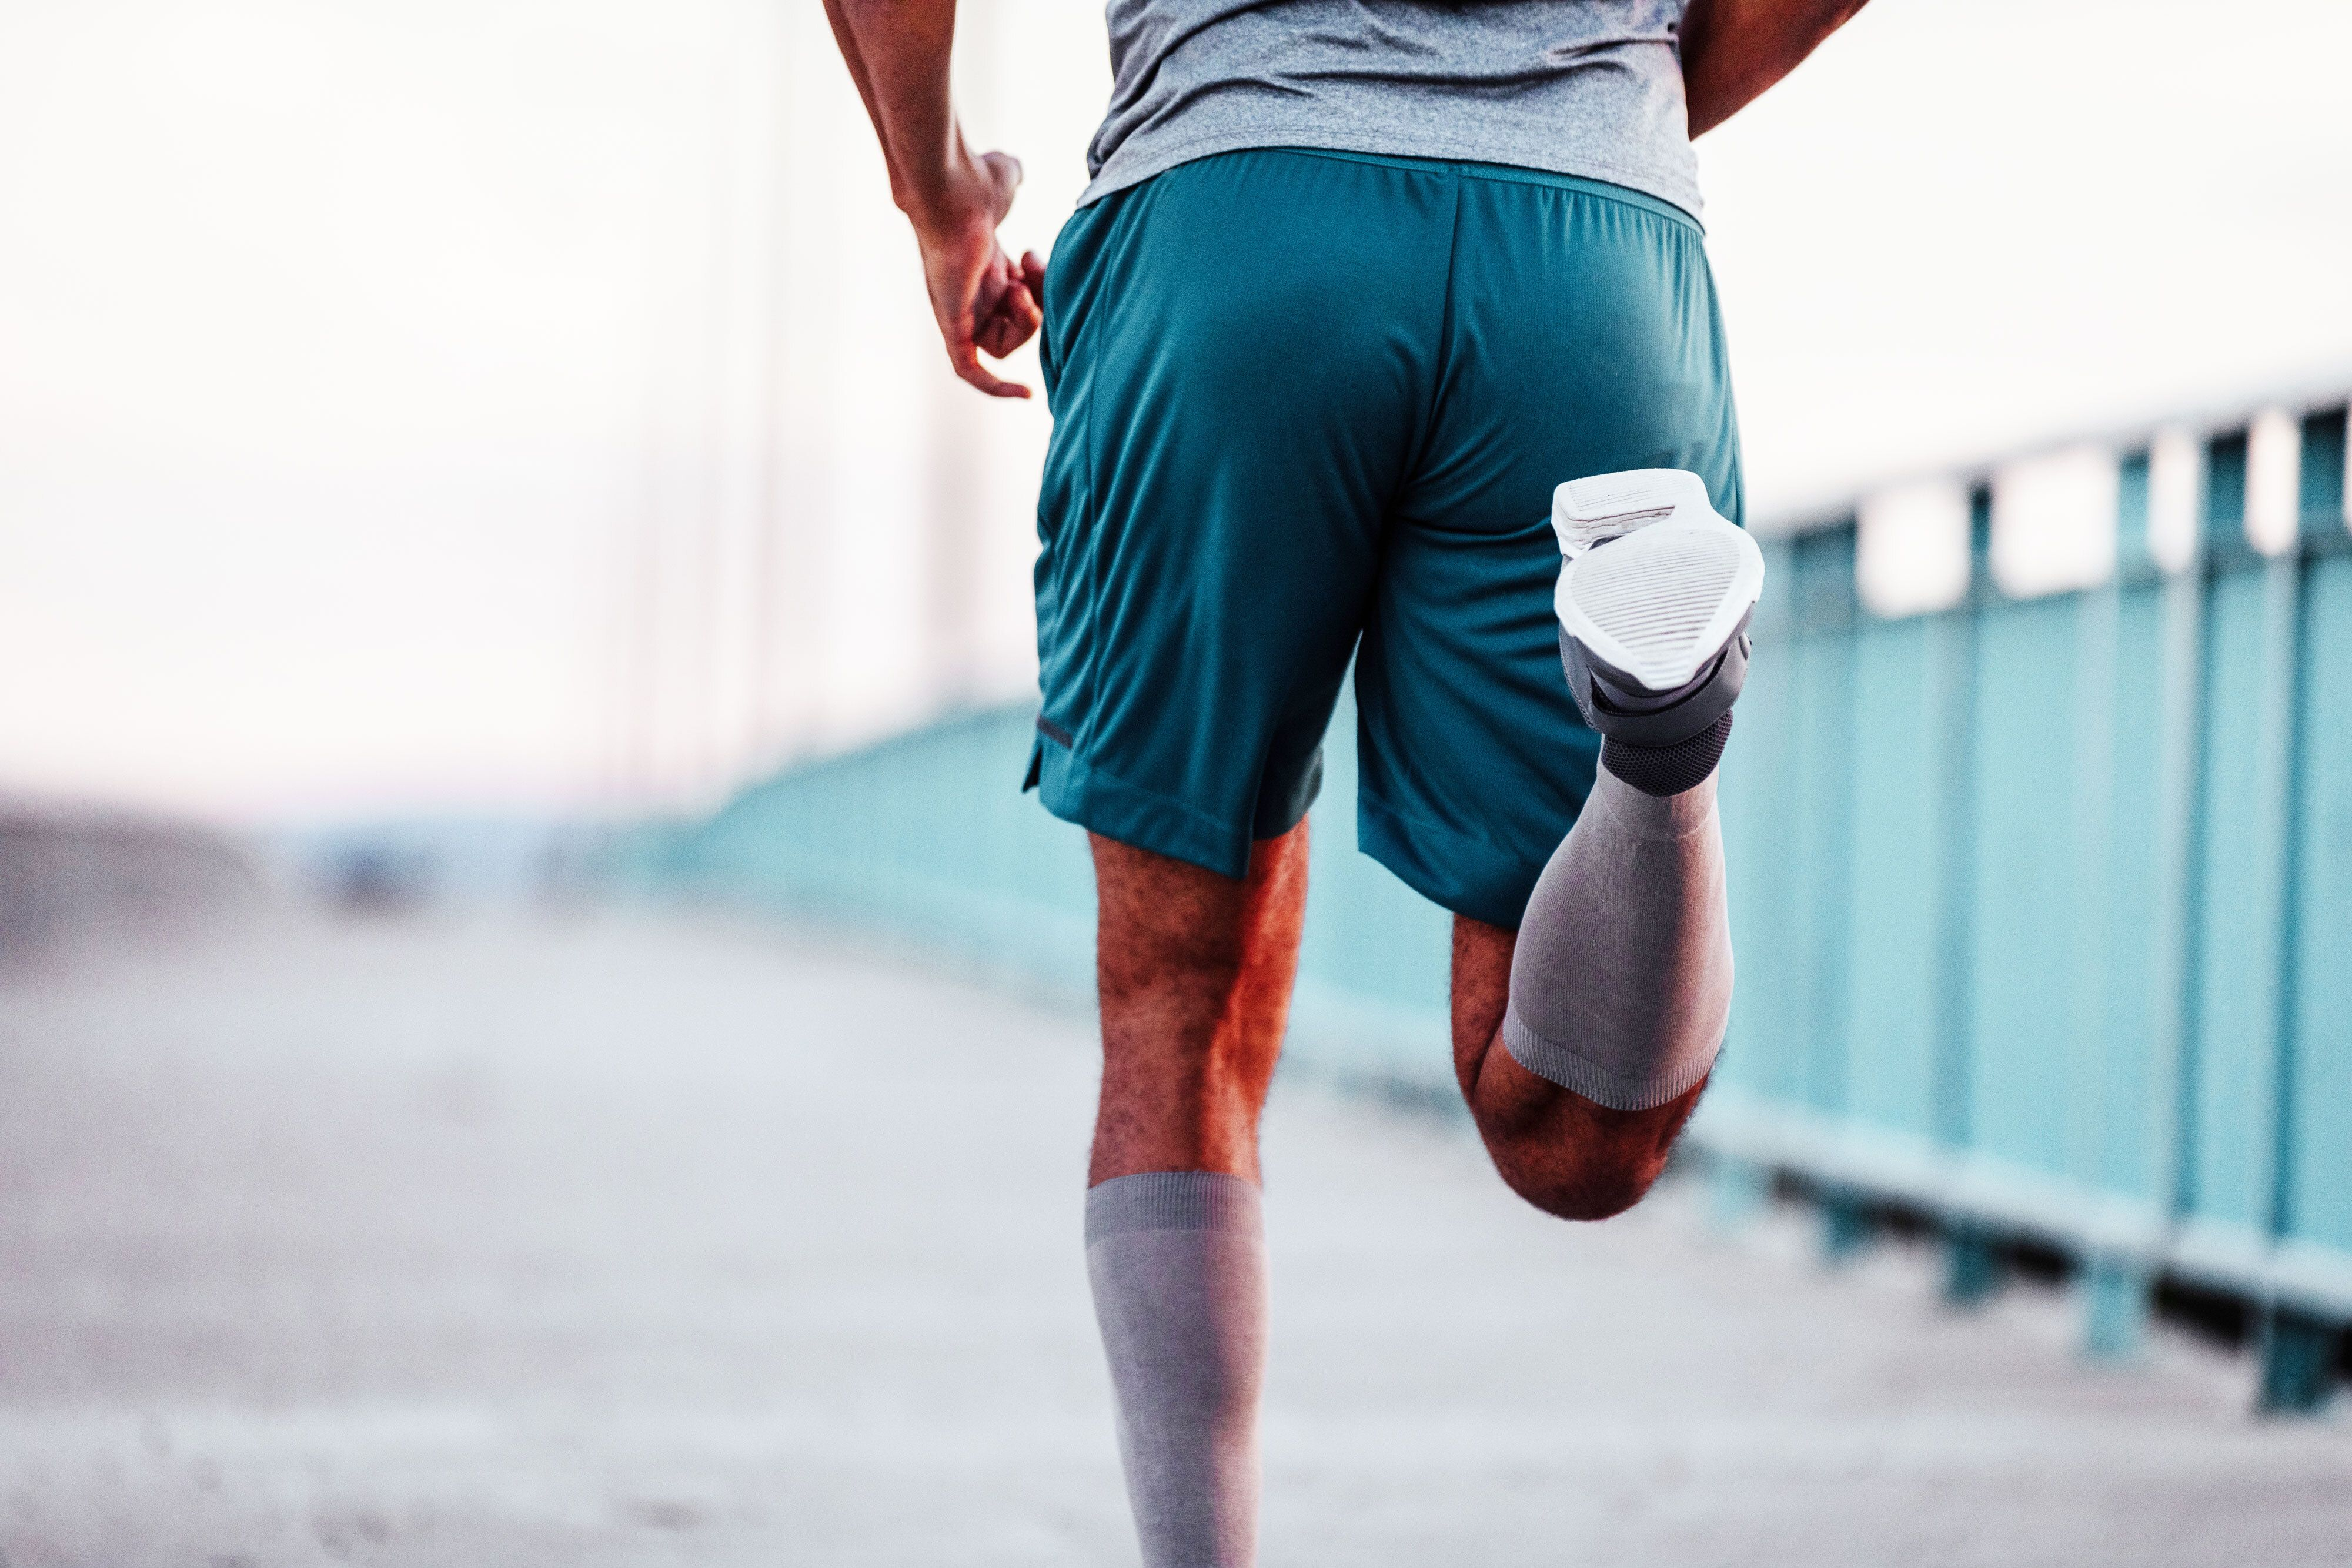 How to Treat and Prevent Chafing in Your Groin Area and Anywhere Else